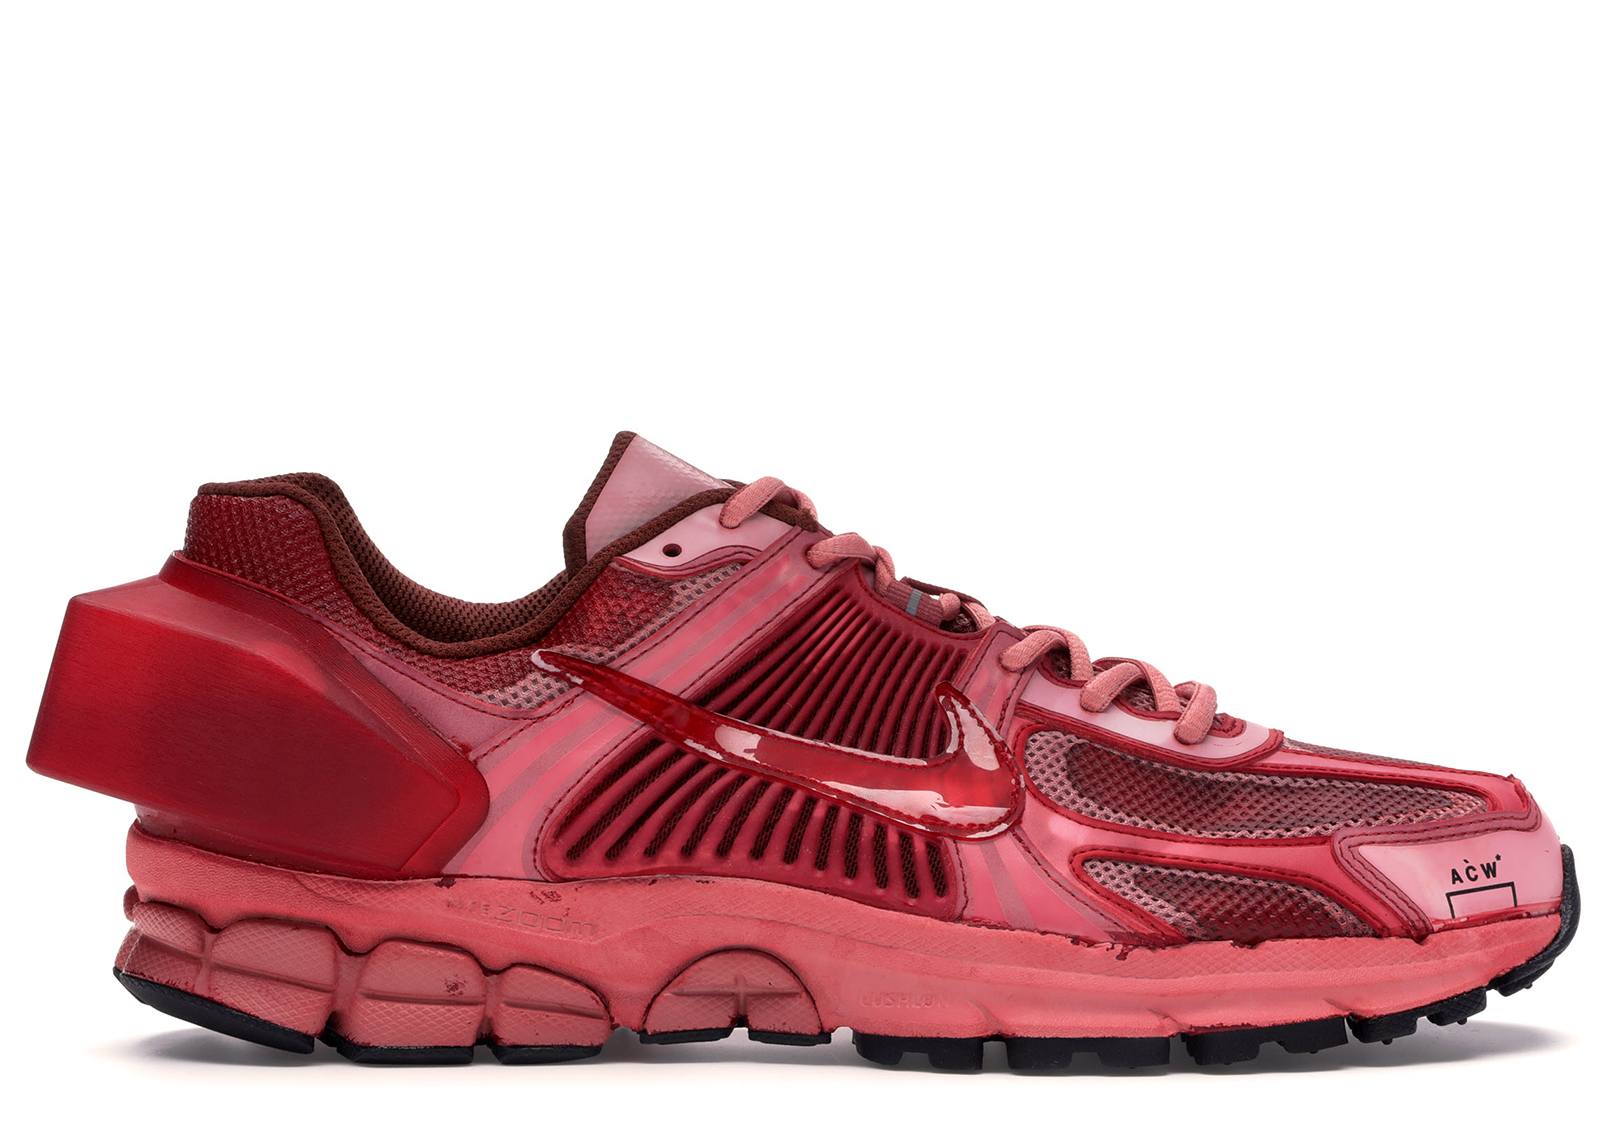 Nike Zoom Vomero 5 A Cold Wall Redox